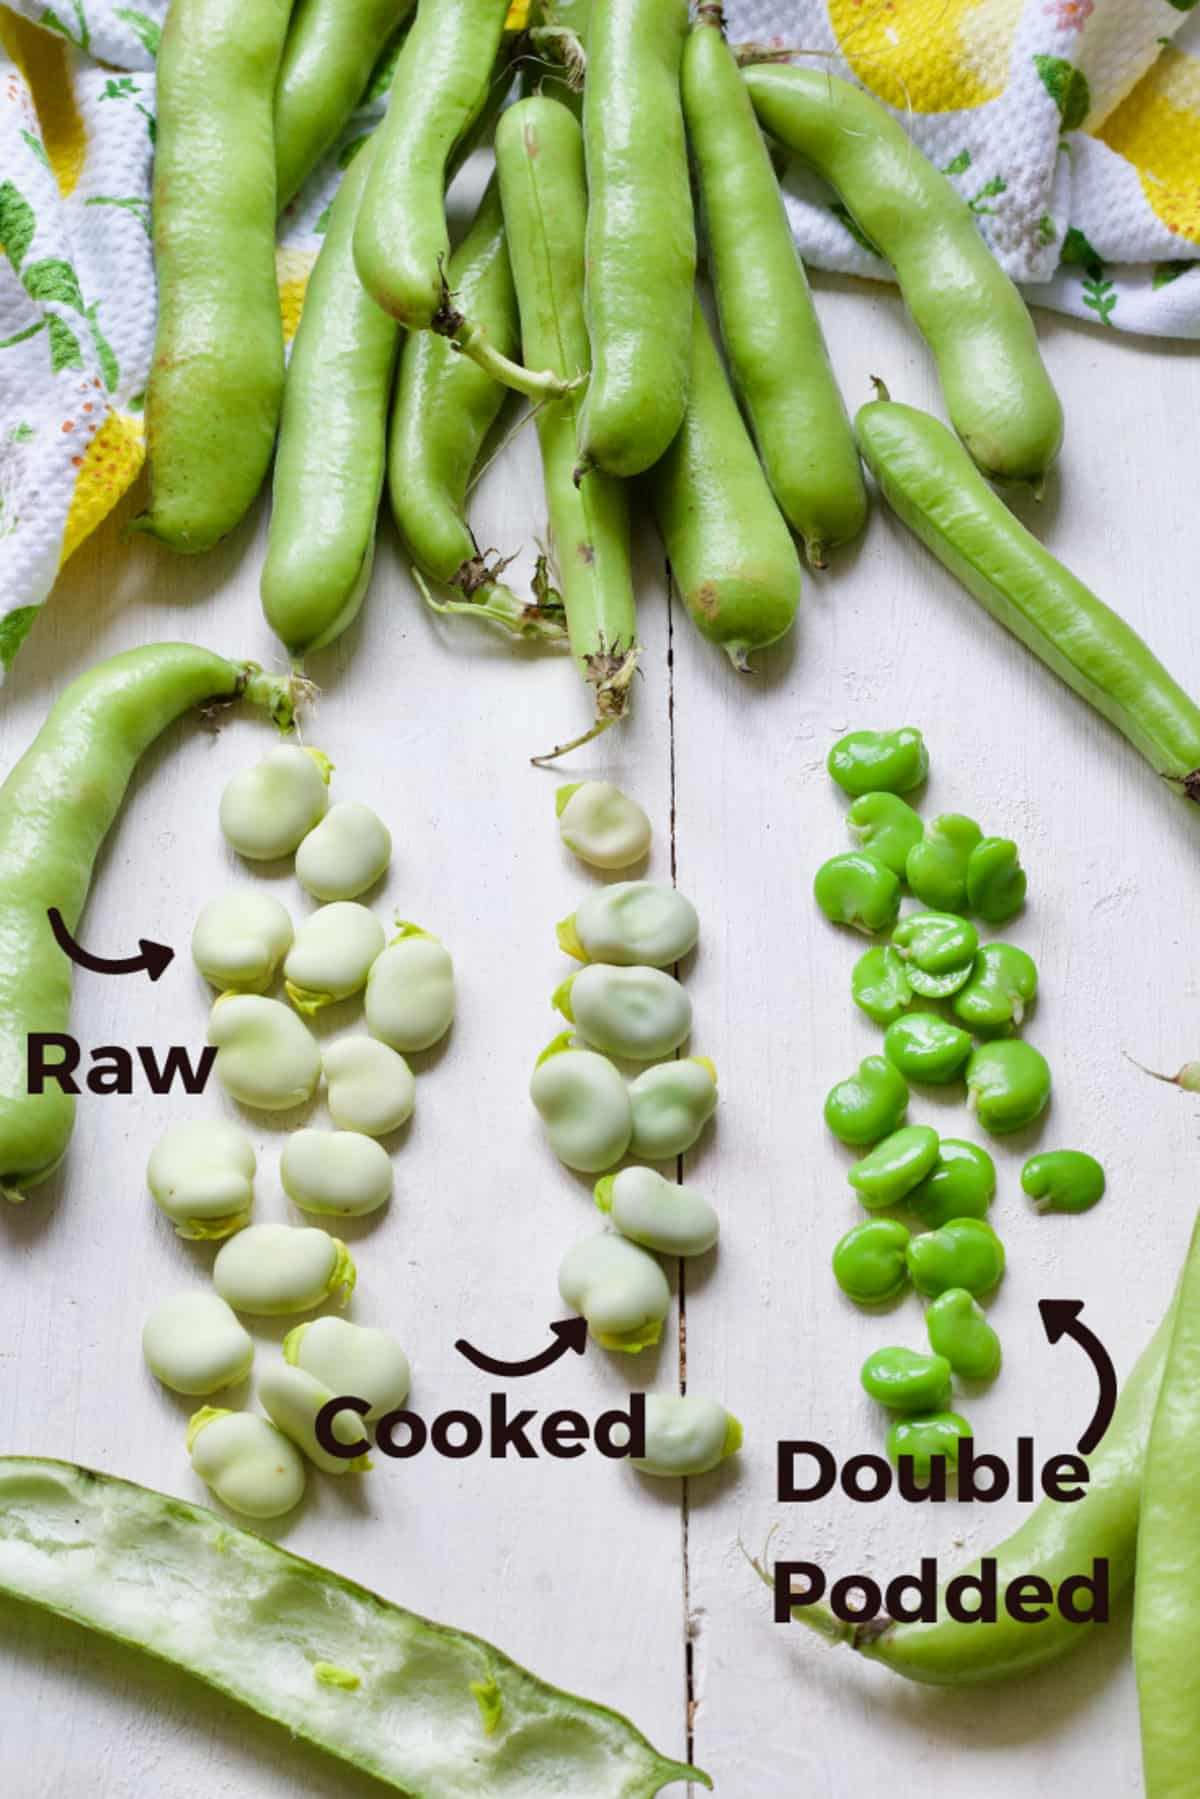 Broad beans shown raw, cooked & double podded.